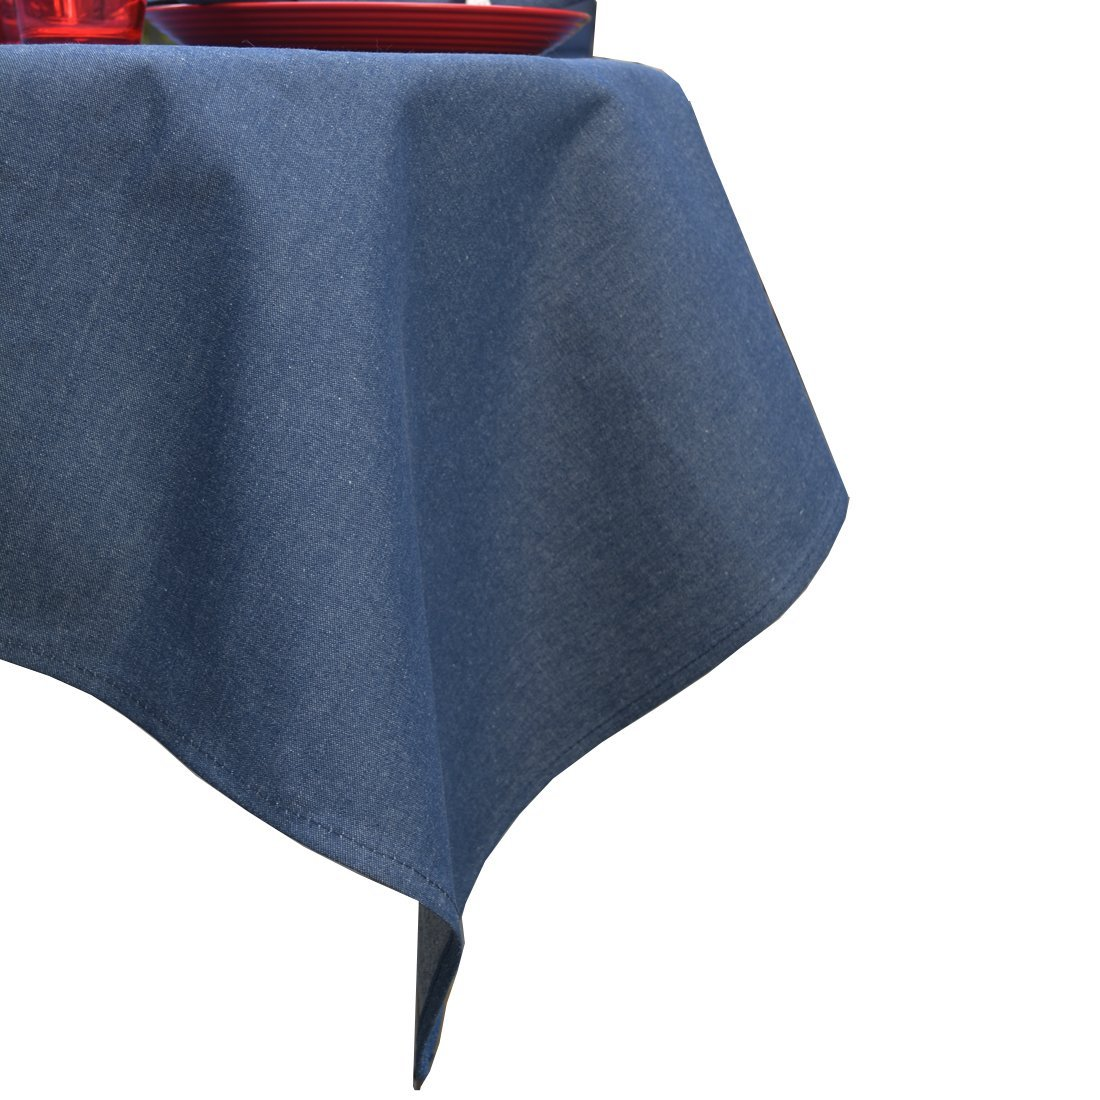 Sweet Pea Linens Blue Denim 54 inch Square Table Cloth